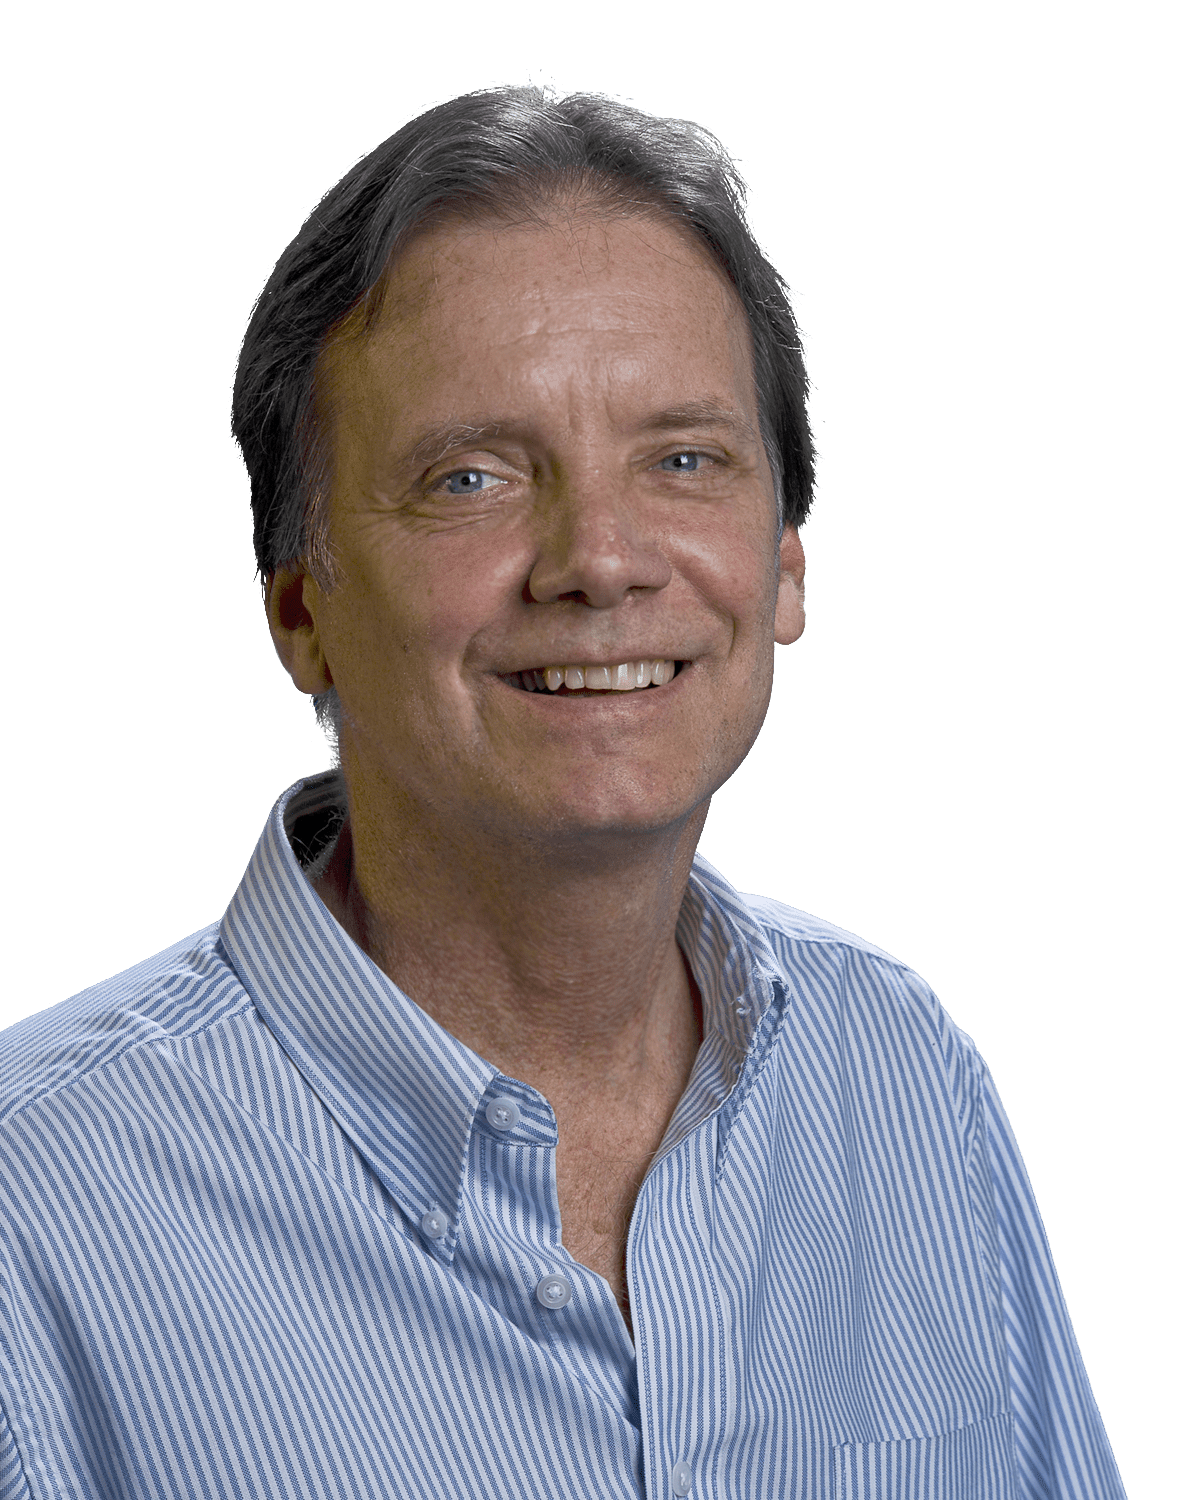 a portrait of Mark Roby